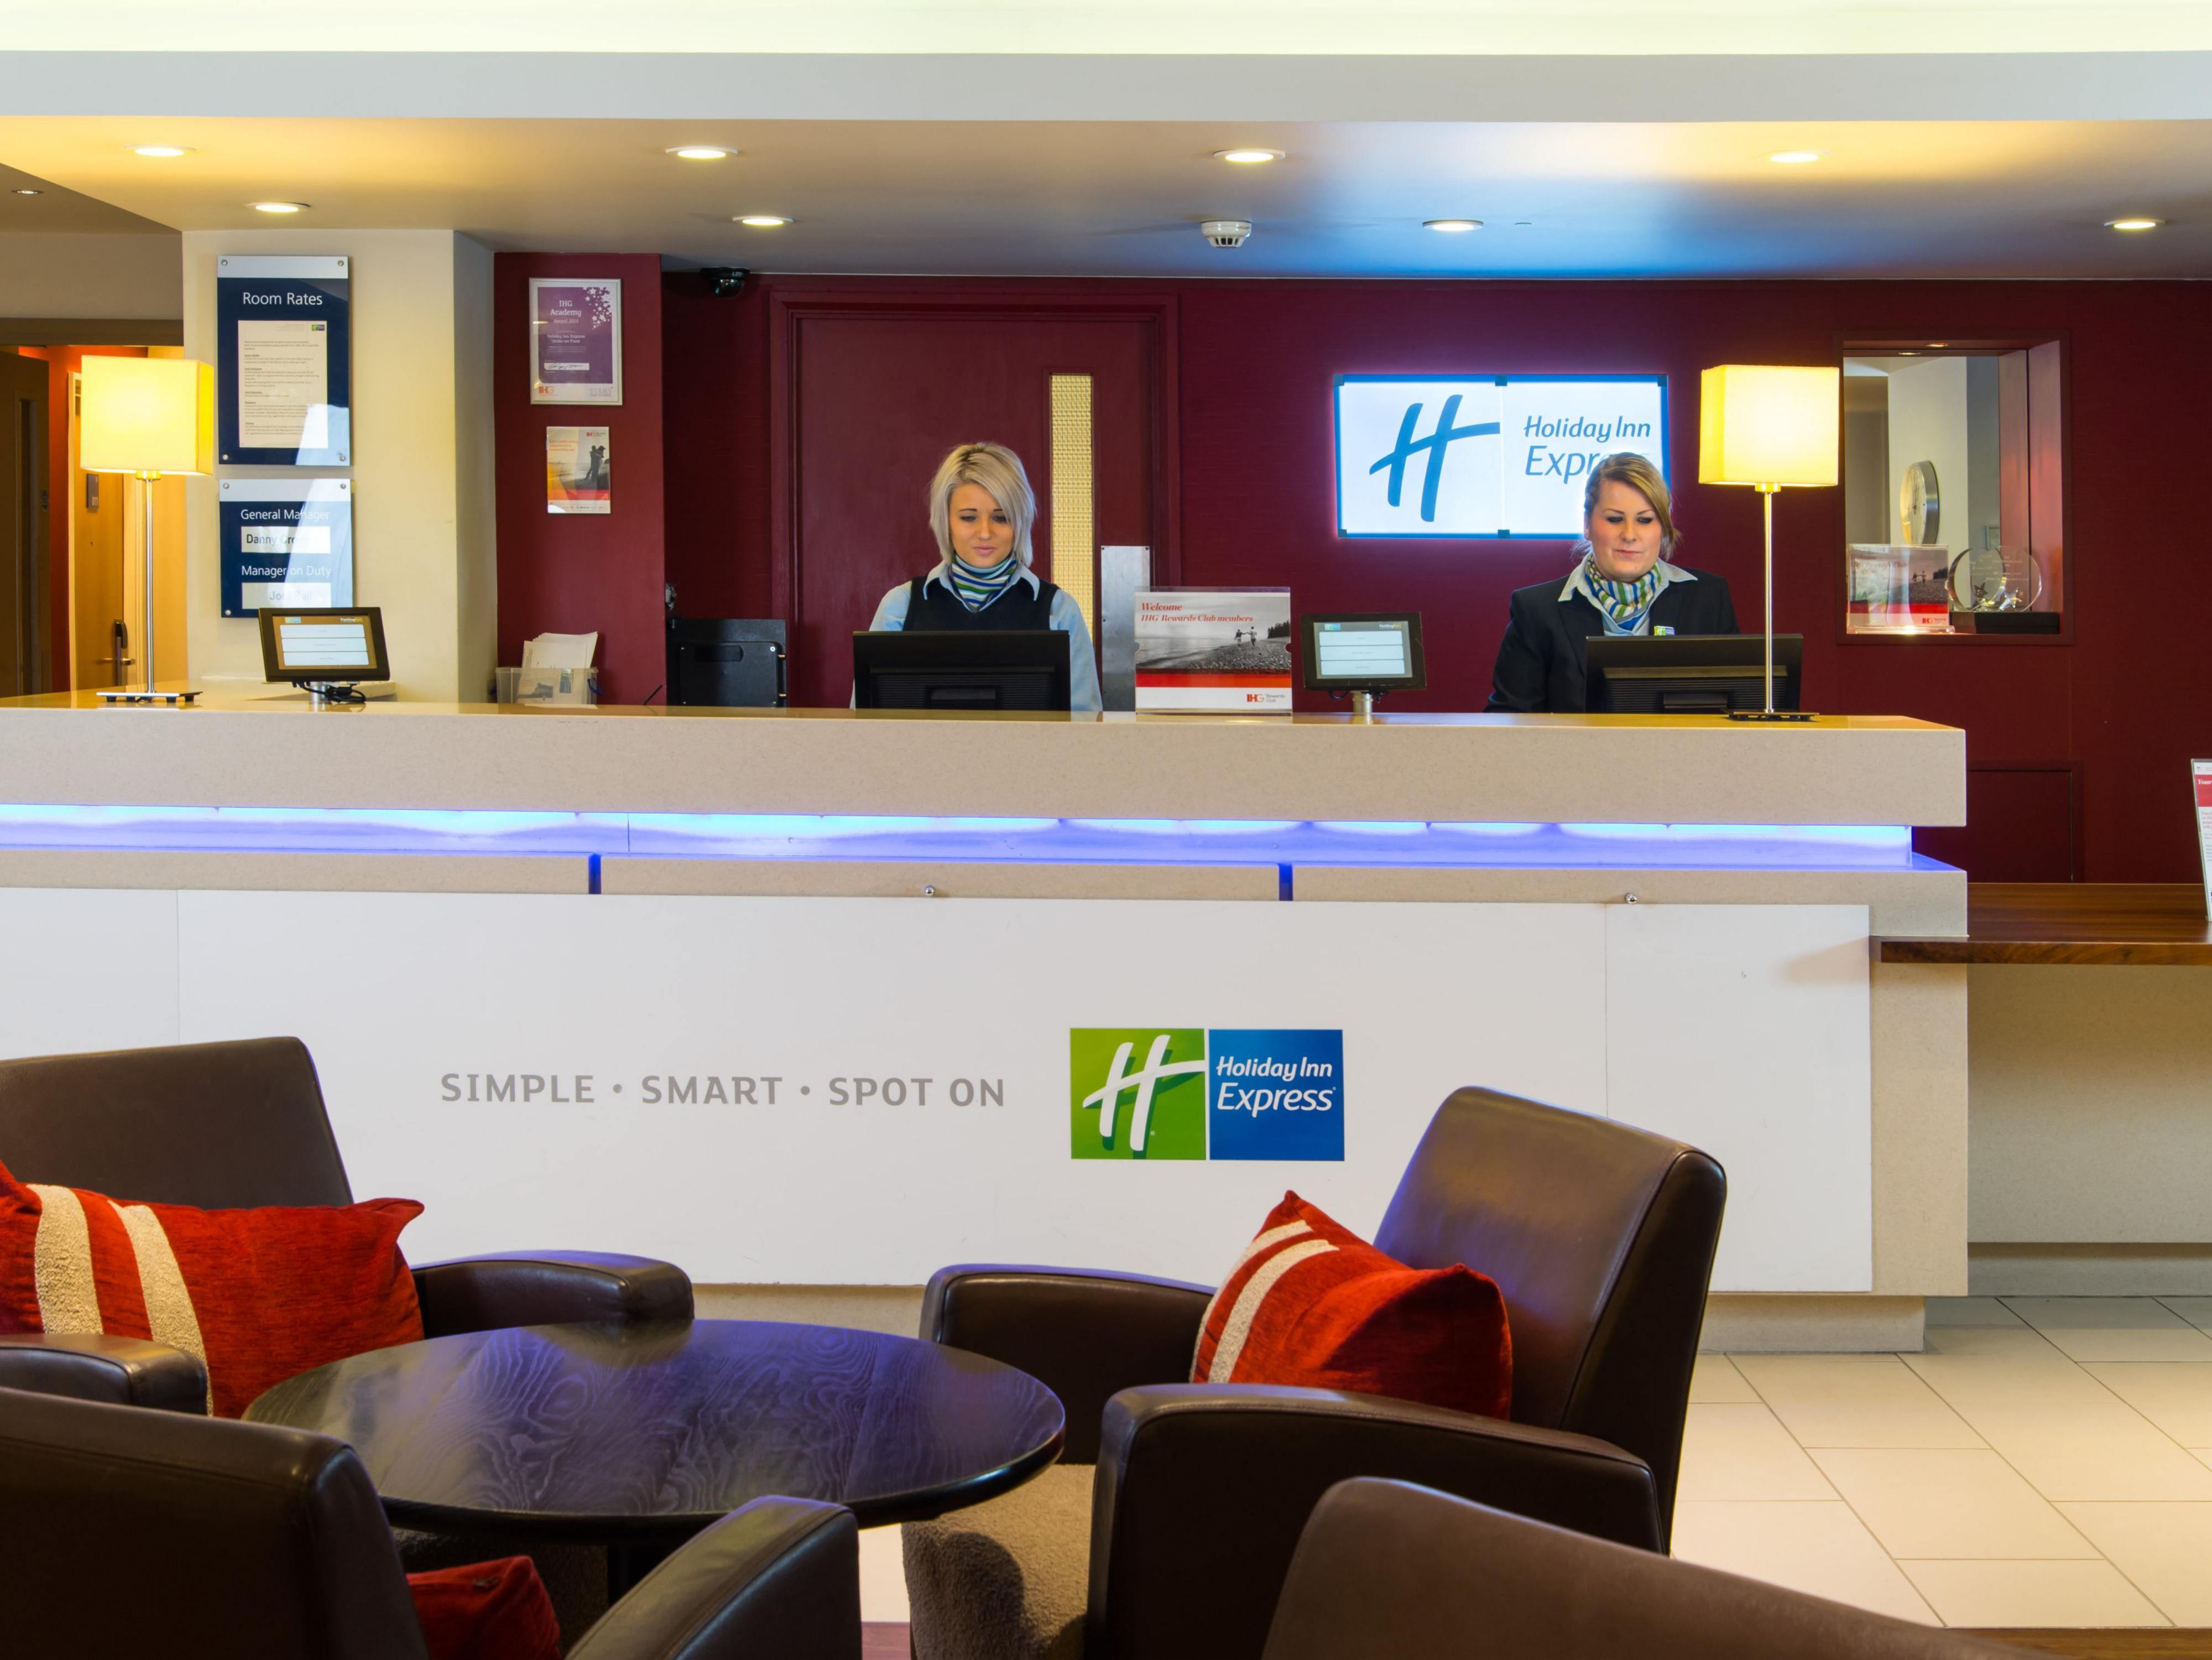 A warm welcome awaits at our Stoke-on-Trent hotel